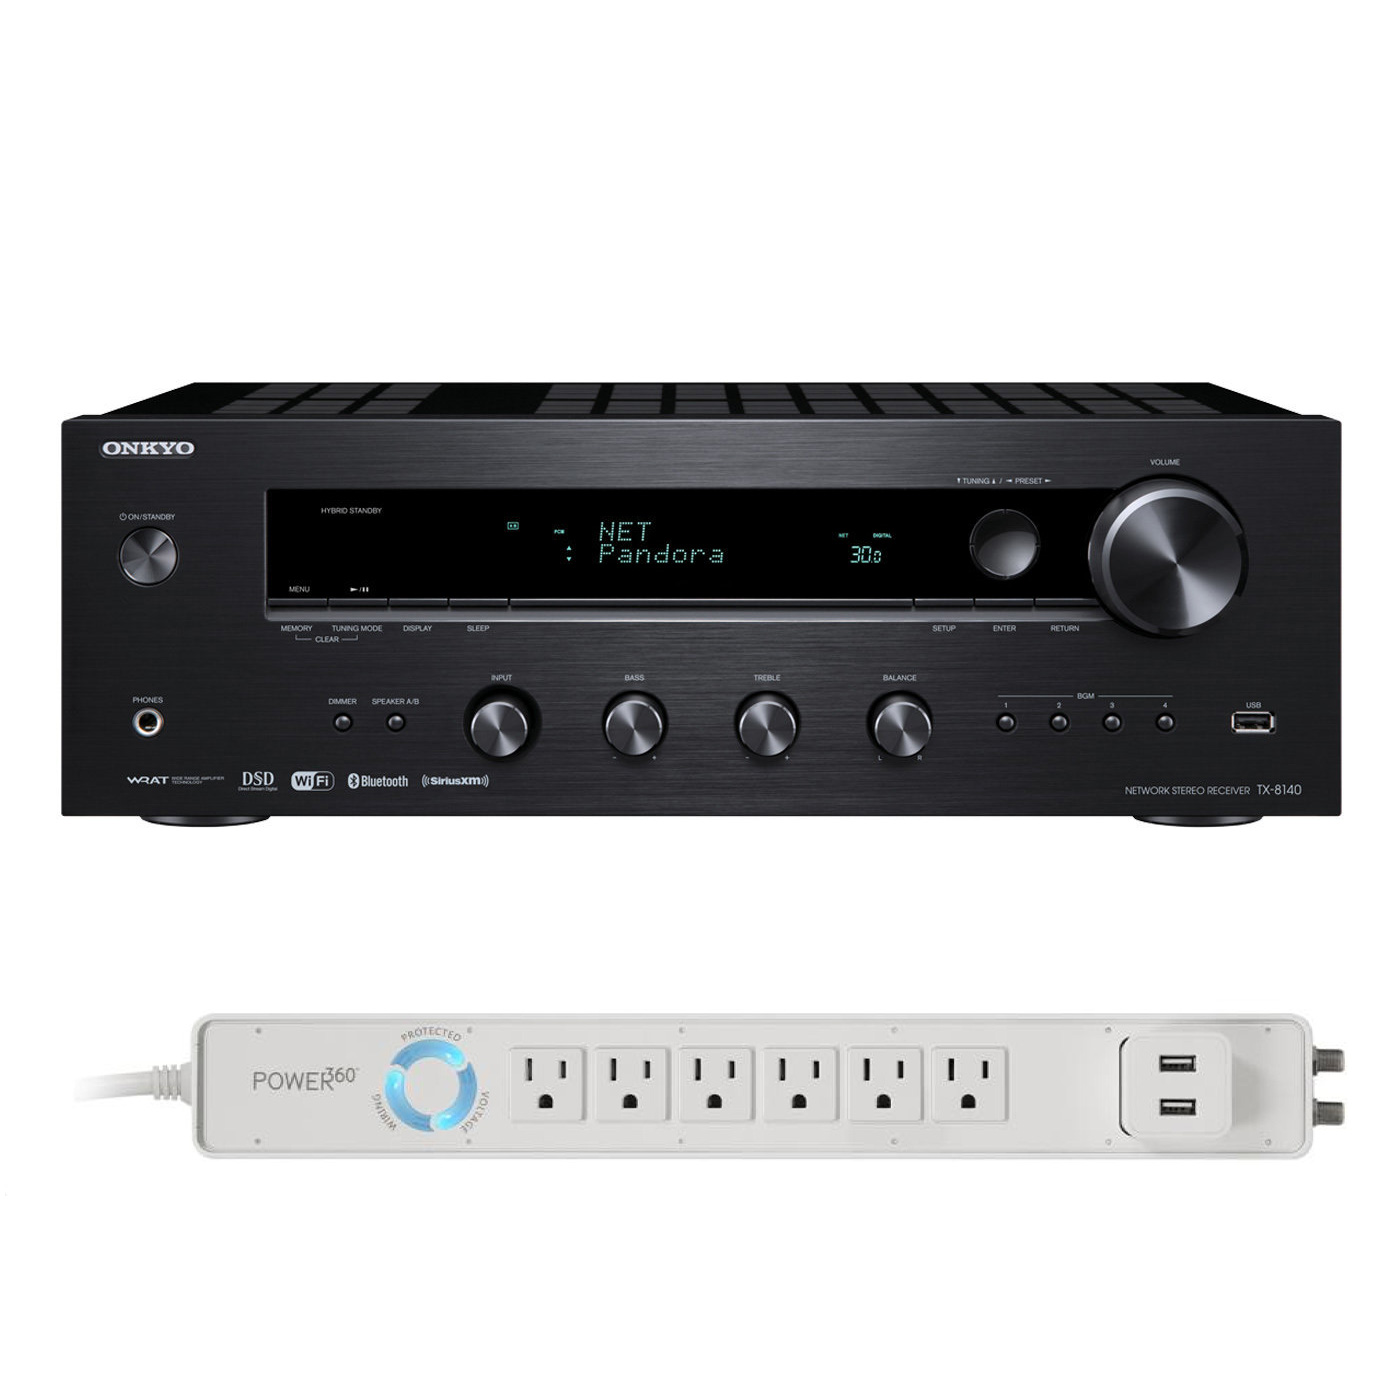 Onkyo TX-8140 Network Stereo Receiver with Built-In Wi-Fi & Bluetooth and Panamax 6-Outlet Floor Power Strip... by Onkyo